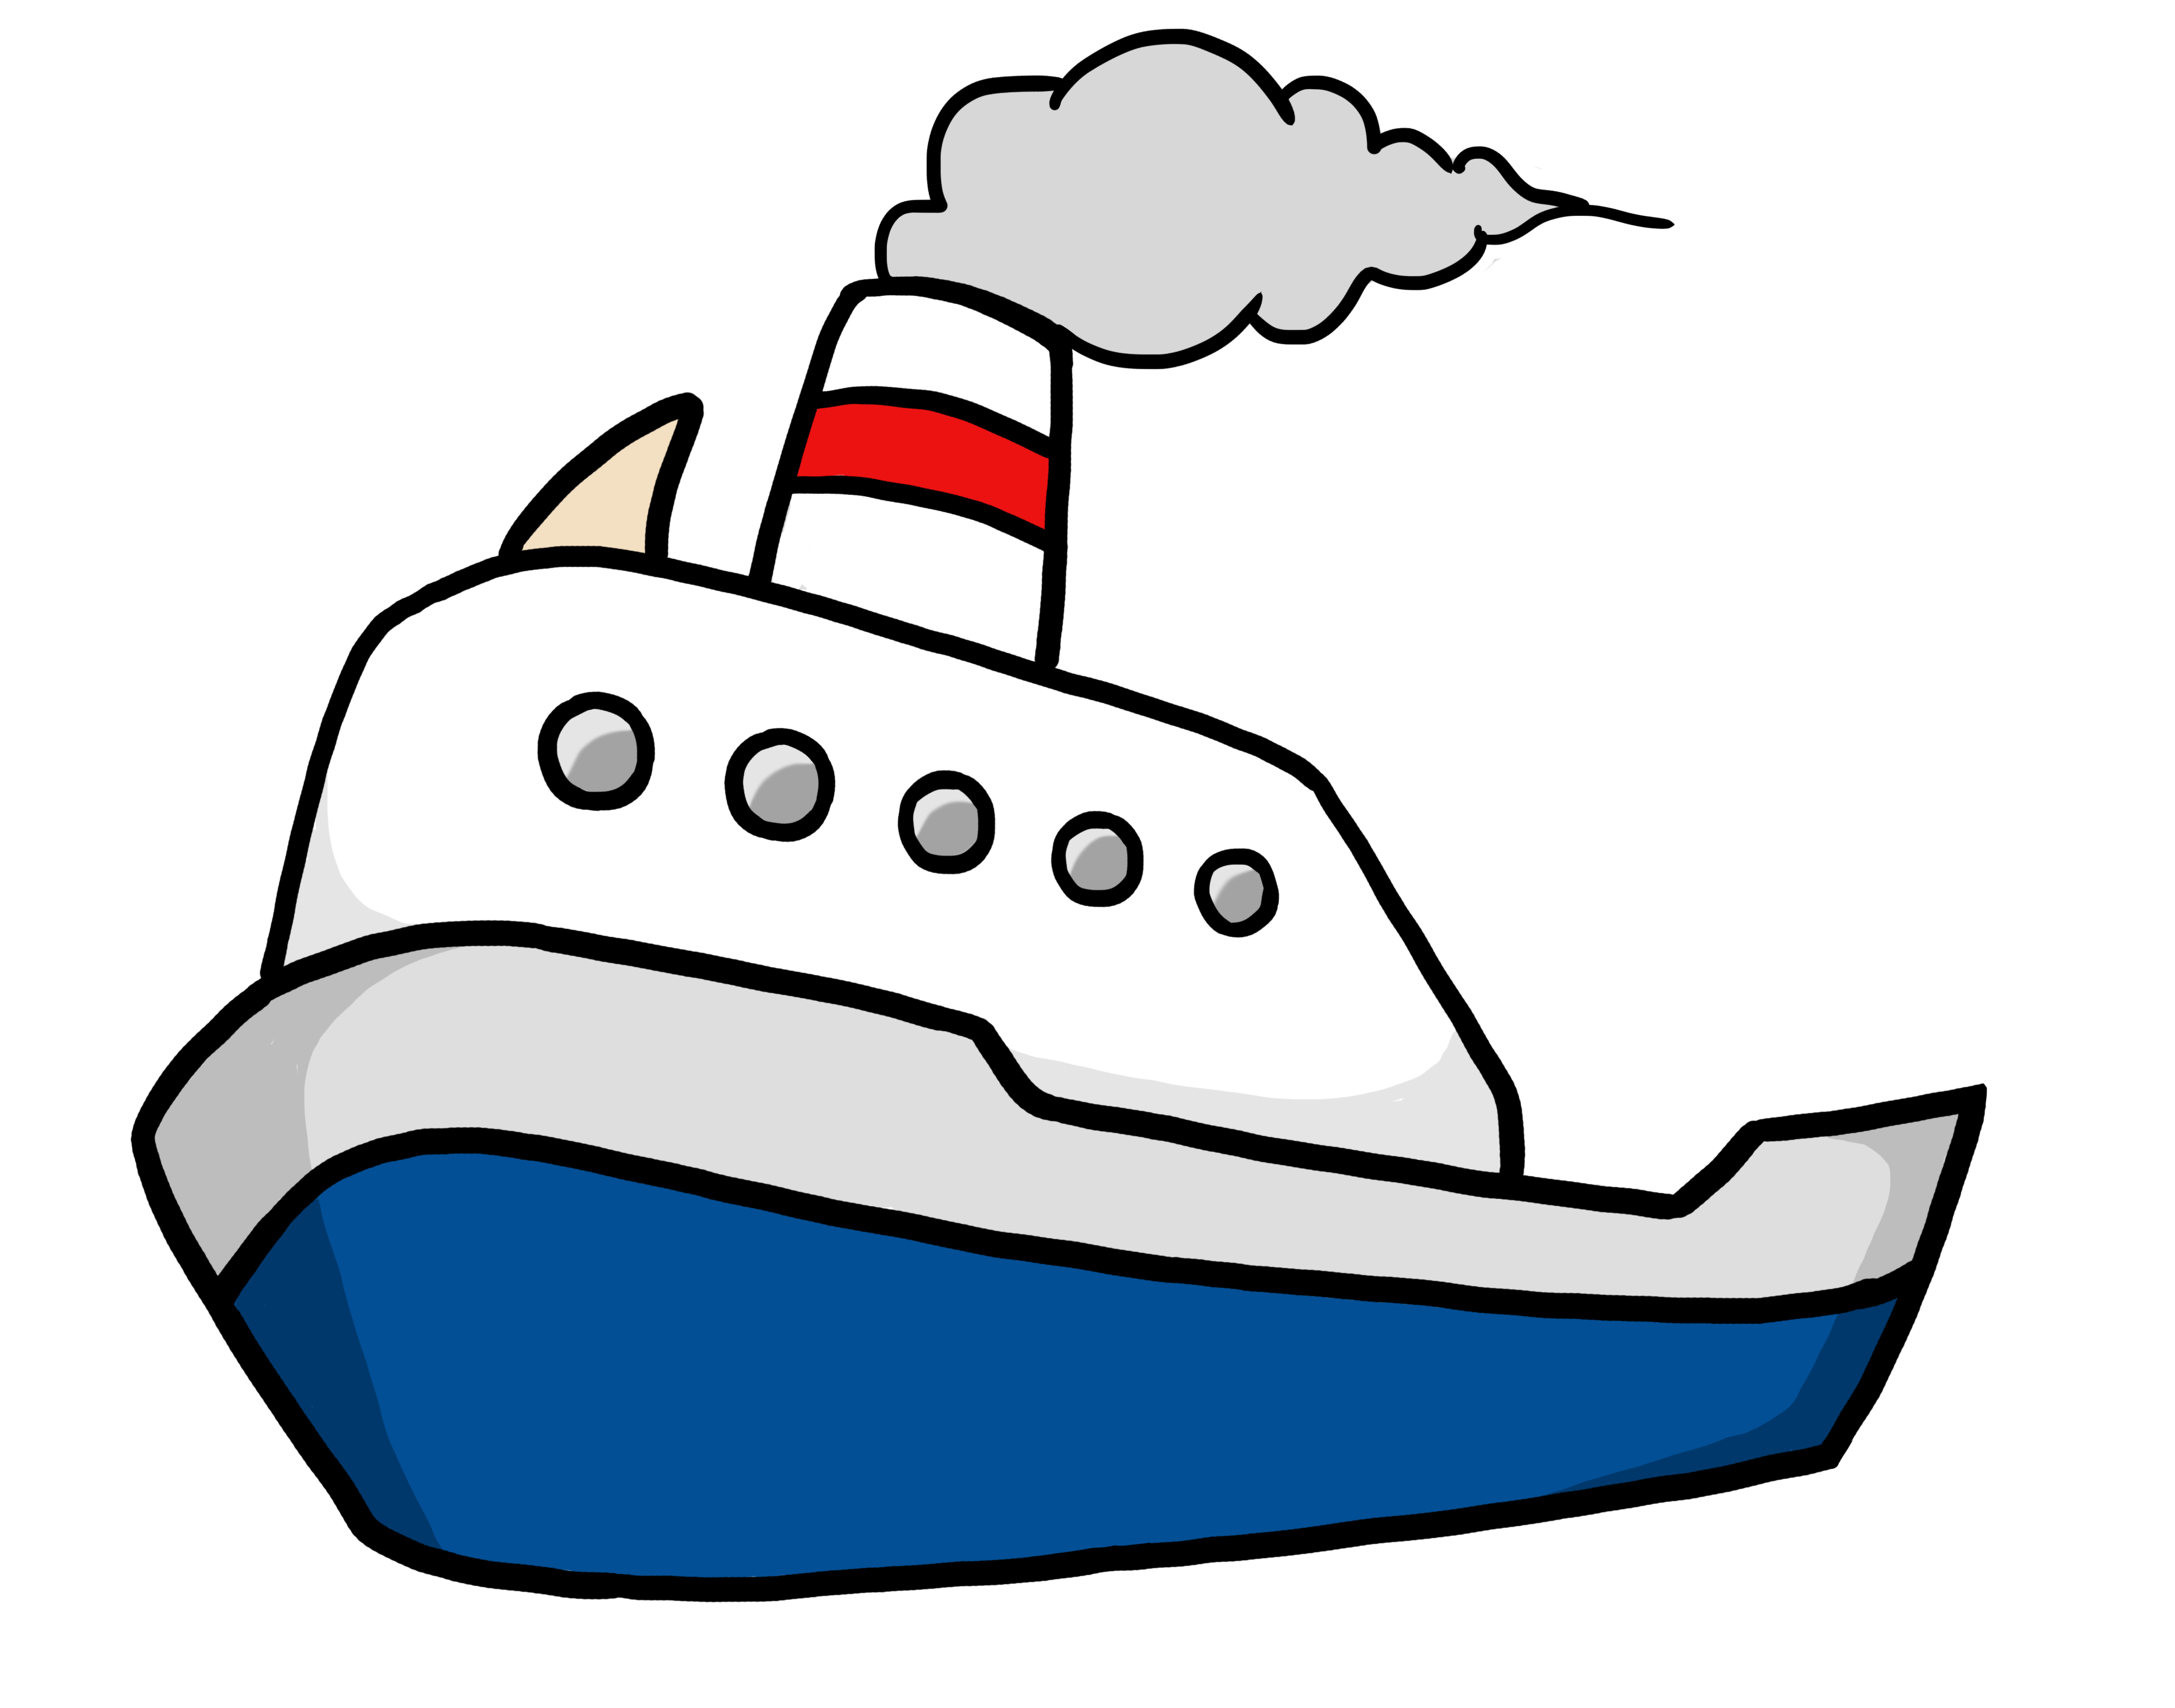 Boat clipart. Ship tour for